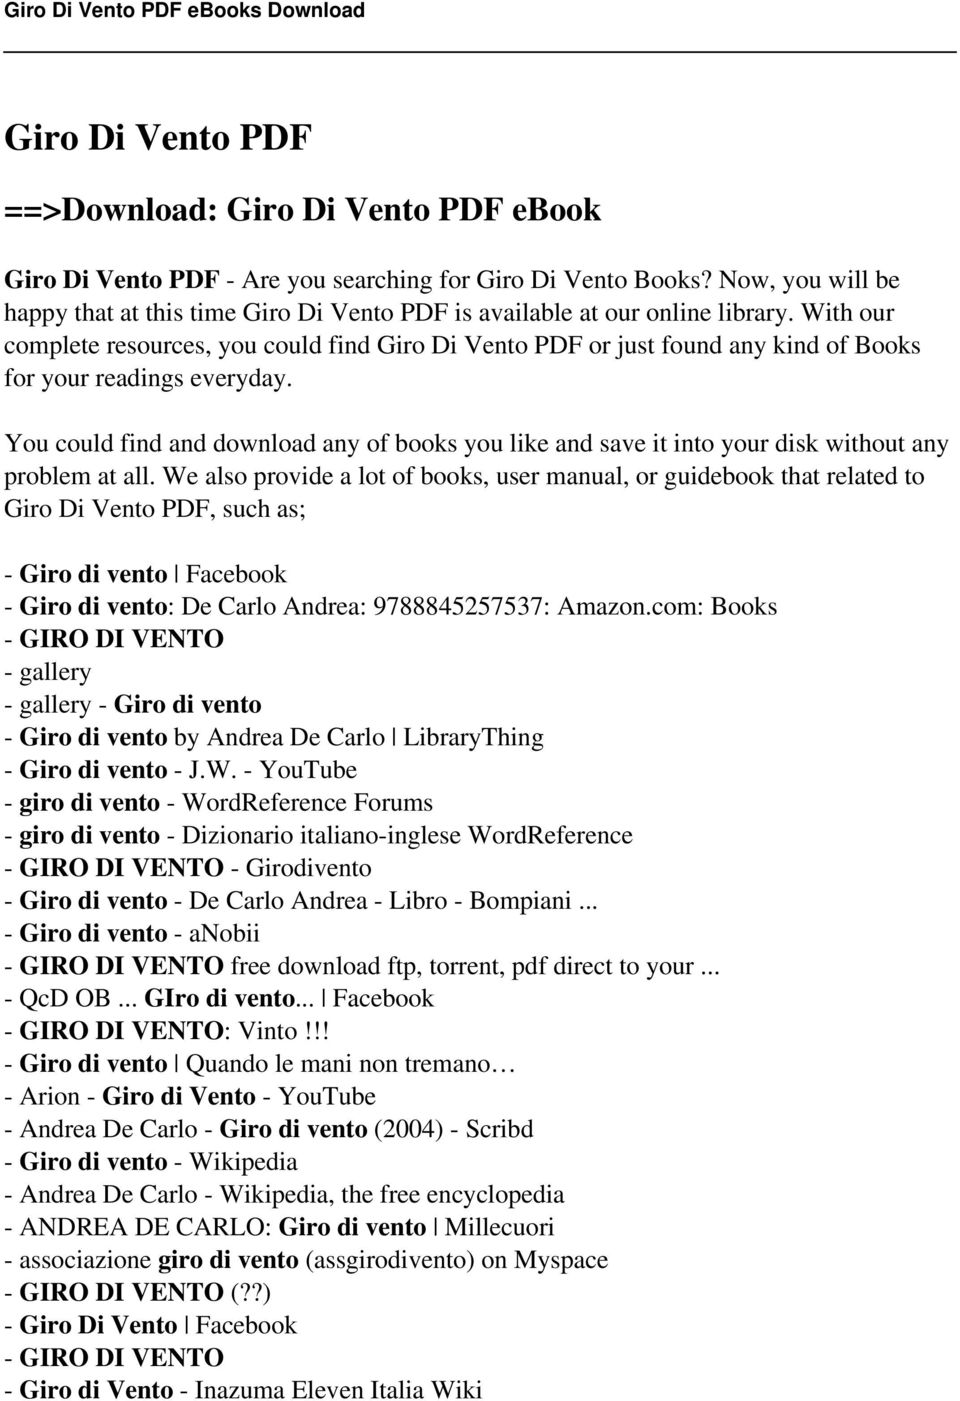 Giro di vento pdf download giro di vento pdf ebook pdf with our complete resources you could find giro di vento pdf or just found any fandeluxe Image collections